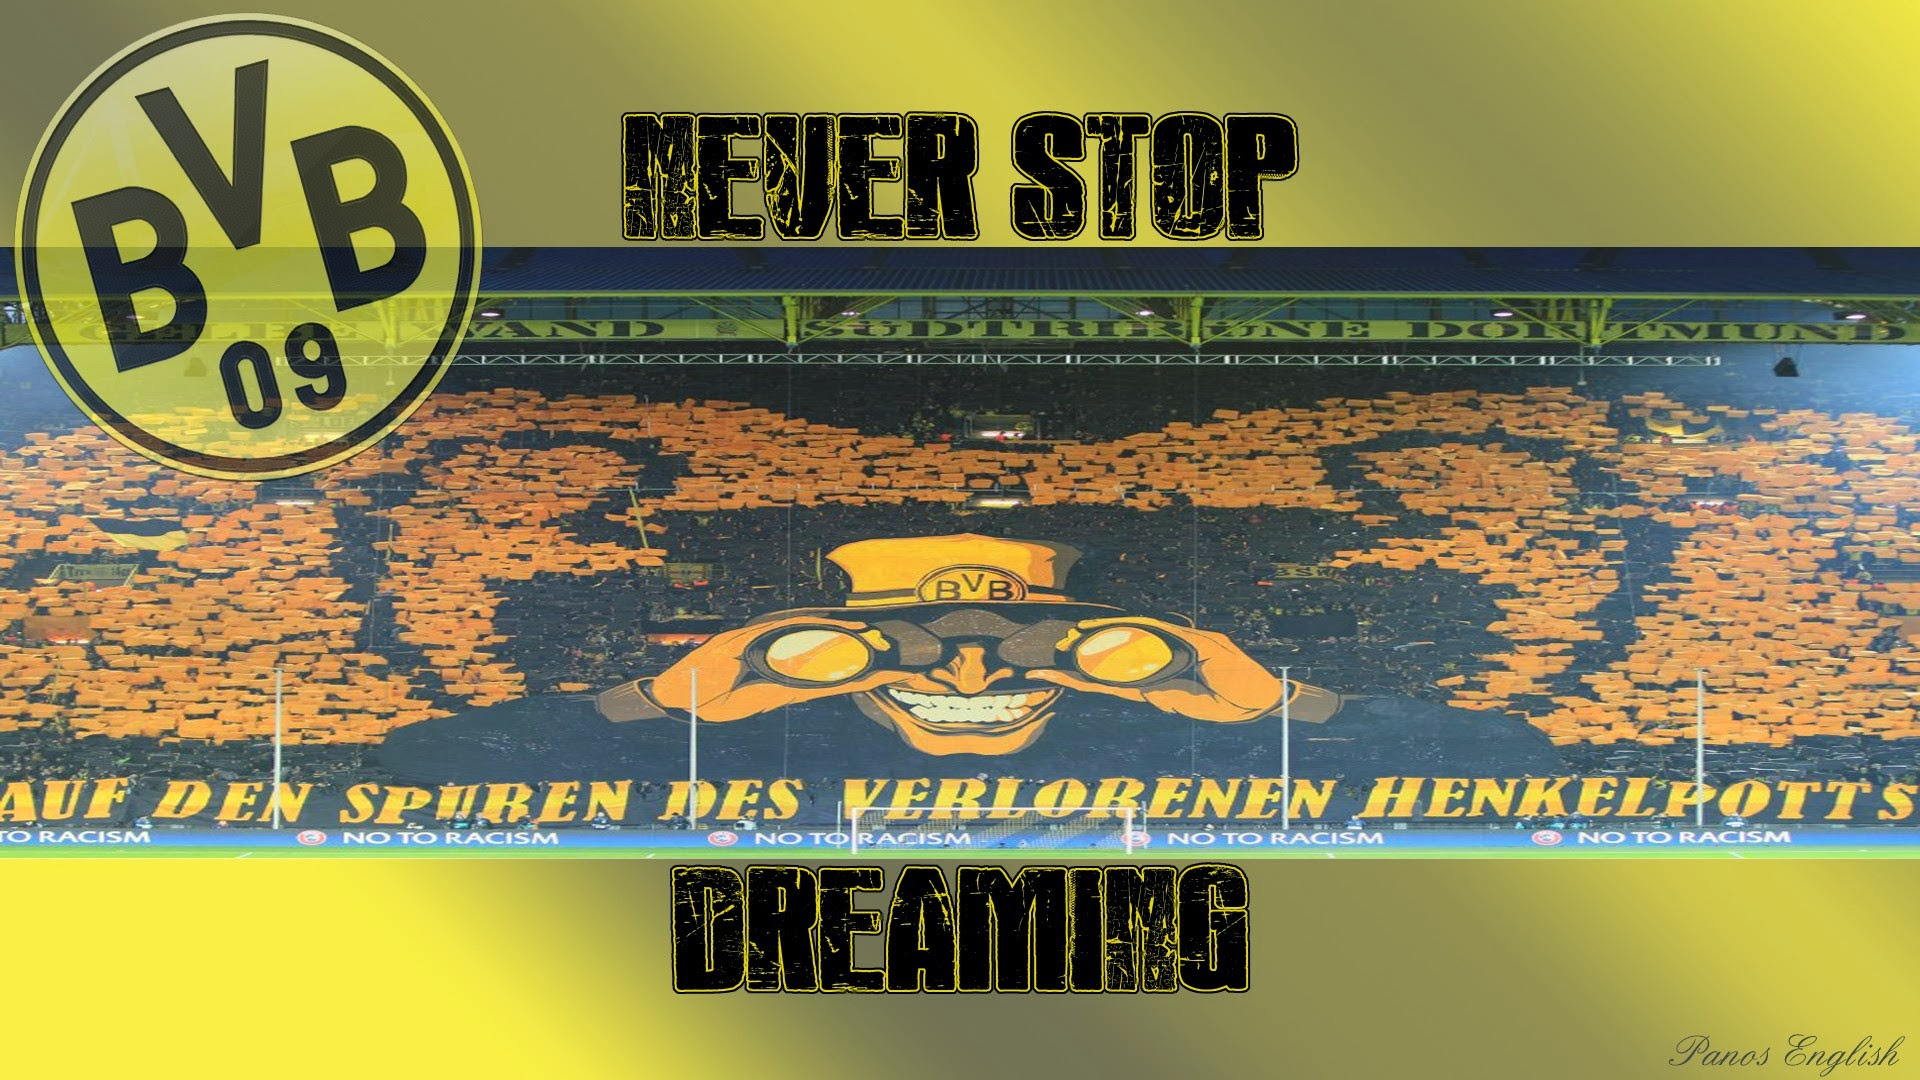 Download Bvb Wallpapers To Your Cell Phone Borussia Bvb Dortmund